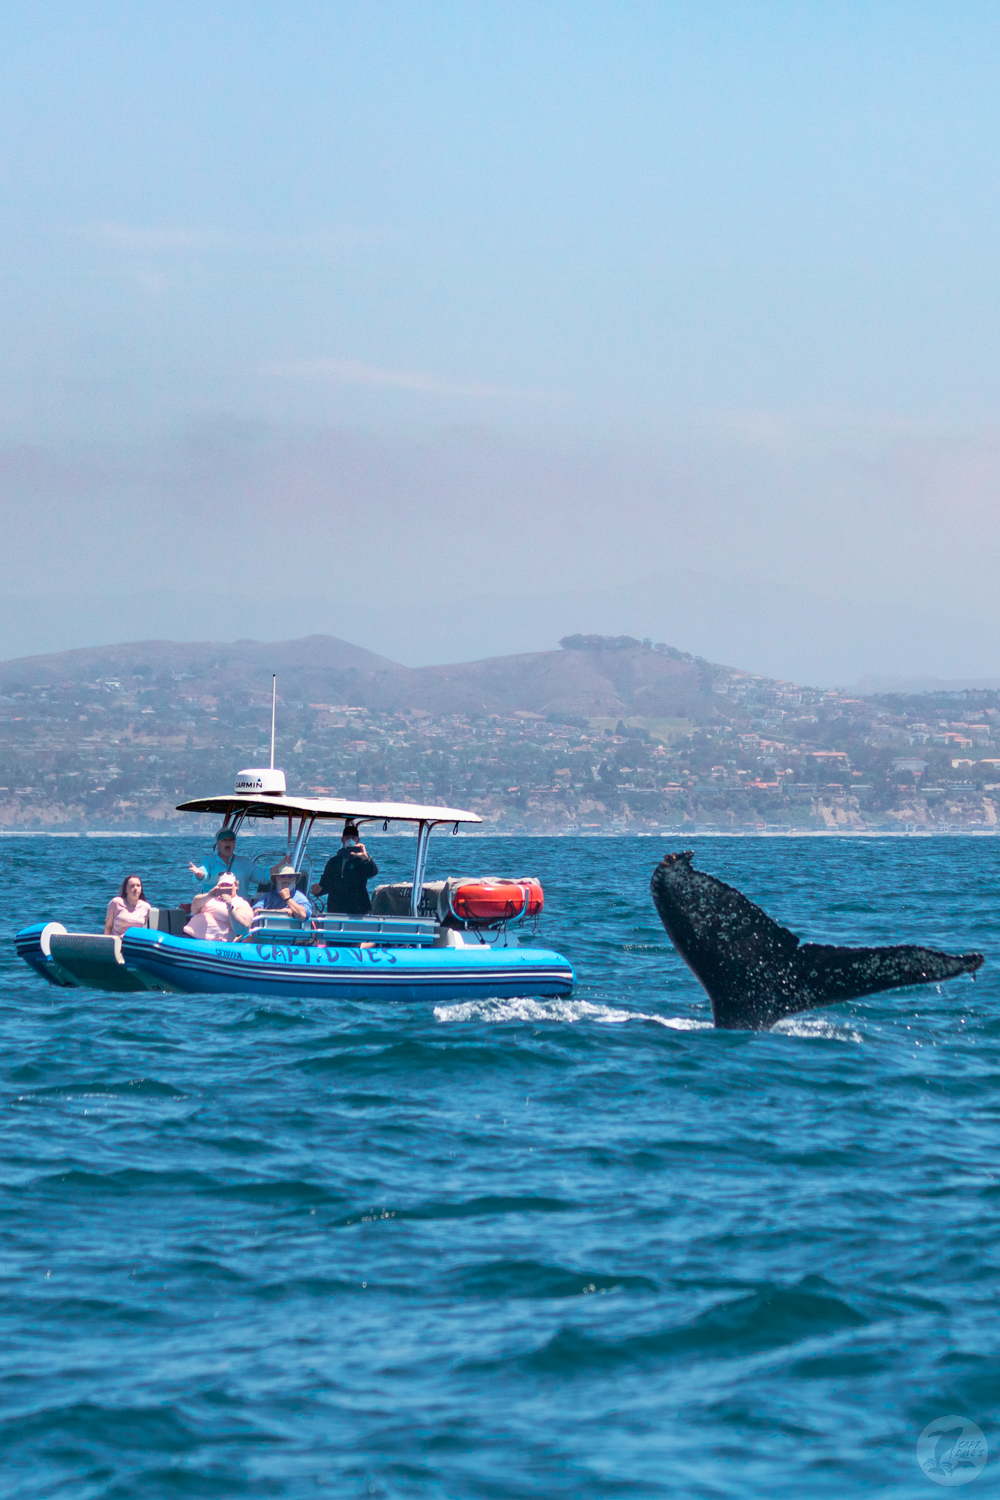 Approached by a curious whale